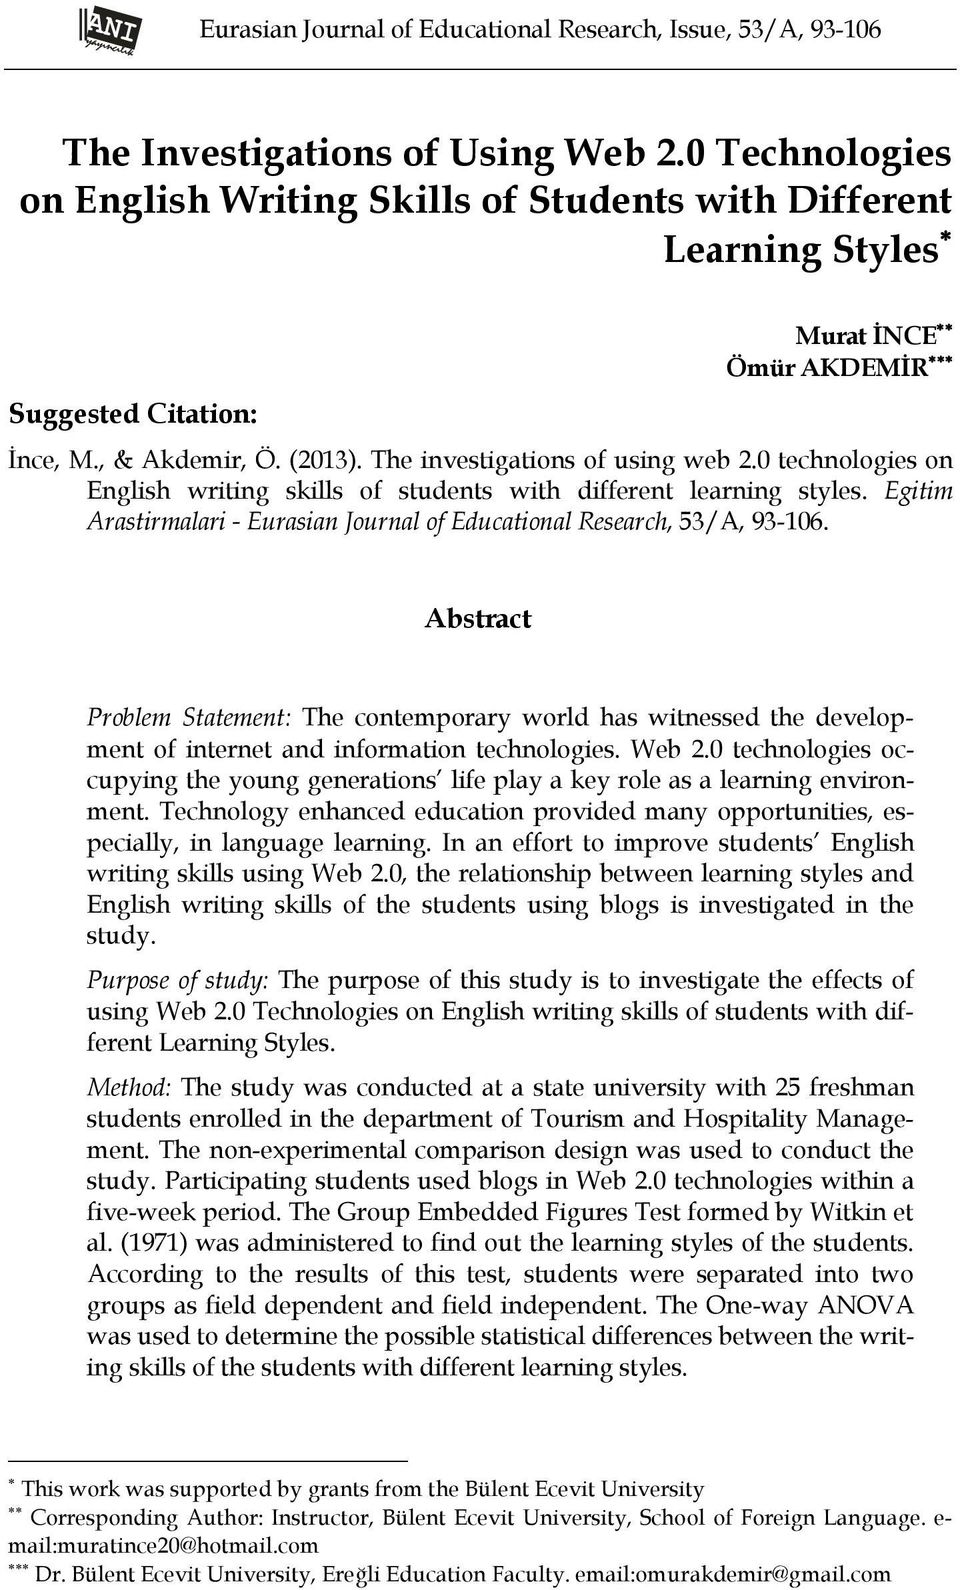 0 technologies on English writing skills of students with different learning styles. Egitim Arastirmalari - Eurasian Journal of Educational Research, 53/A, 93-106.